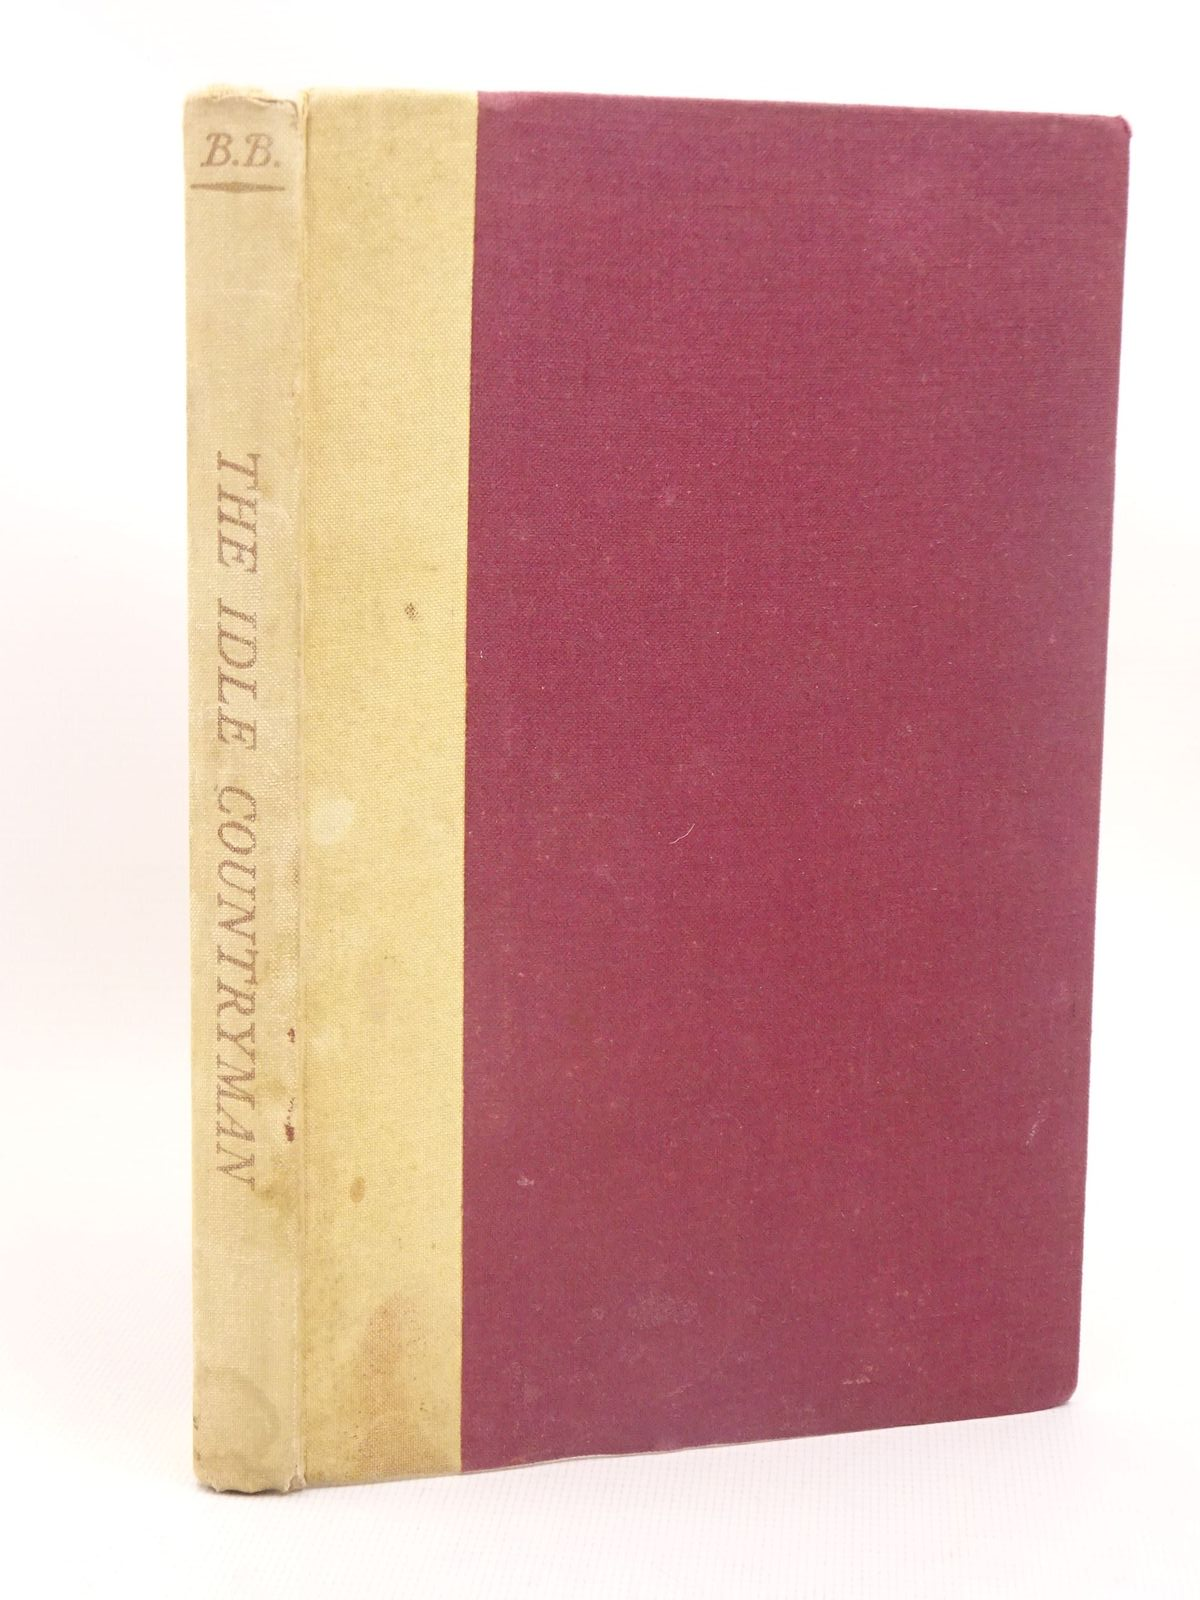 Photo of THE IDLE COUNTRYMAN written by BB,  illustrated by BB,  published by Eyre & Spottiswoode (STOCK CODE: 1317439)  for sale by Stella & Rose's Books